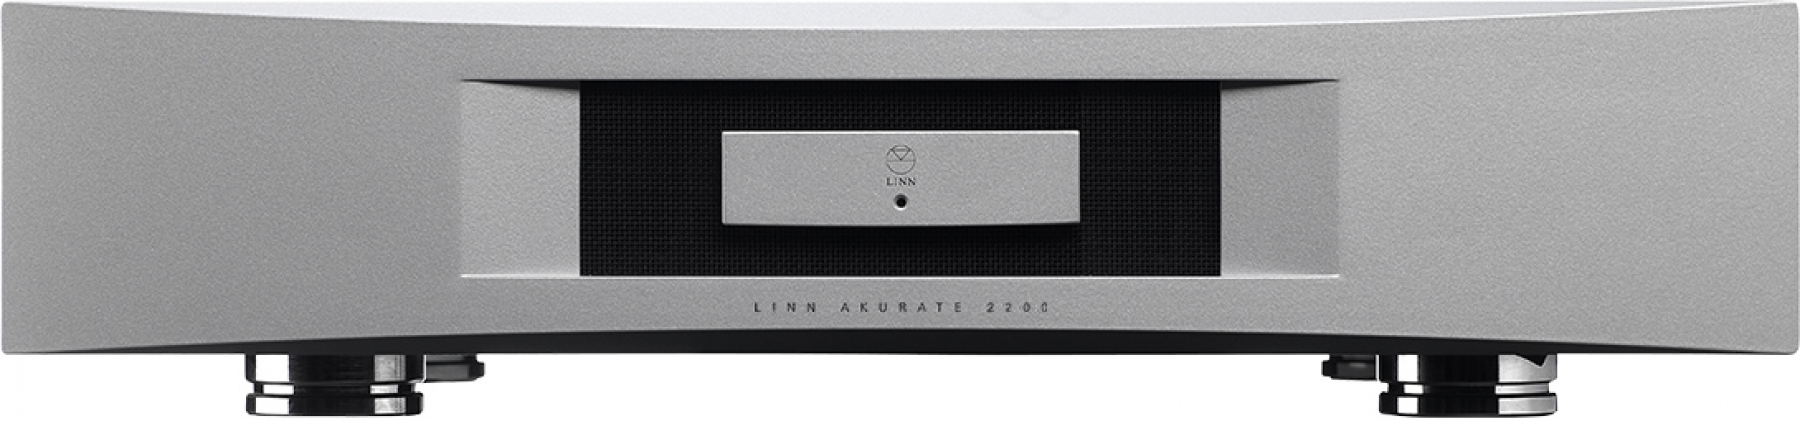 Linn Akurate Amplifiers